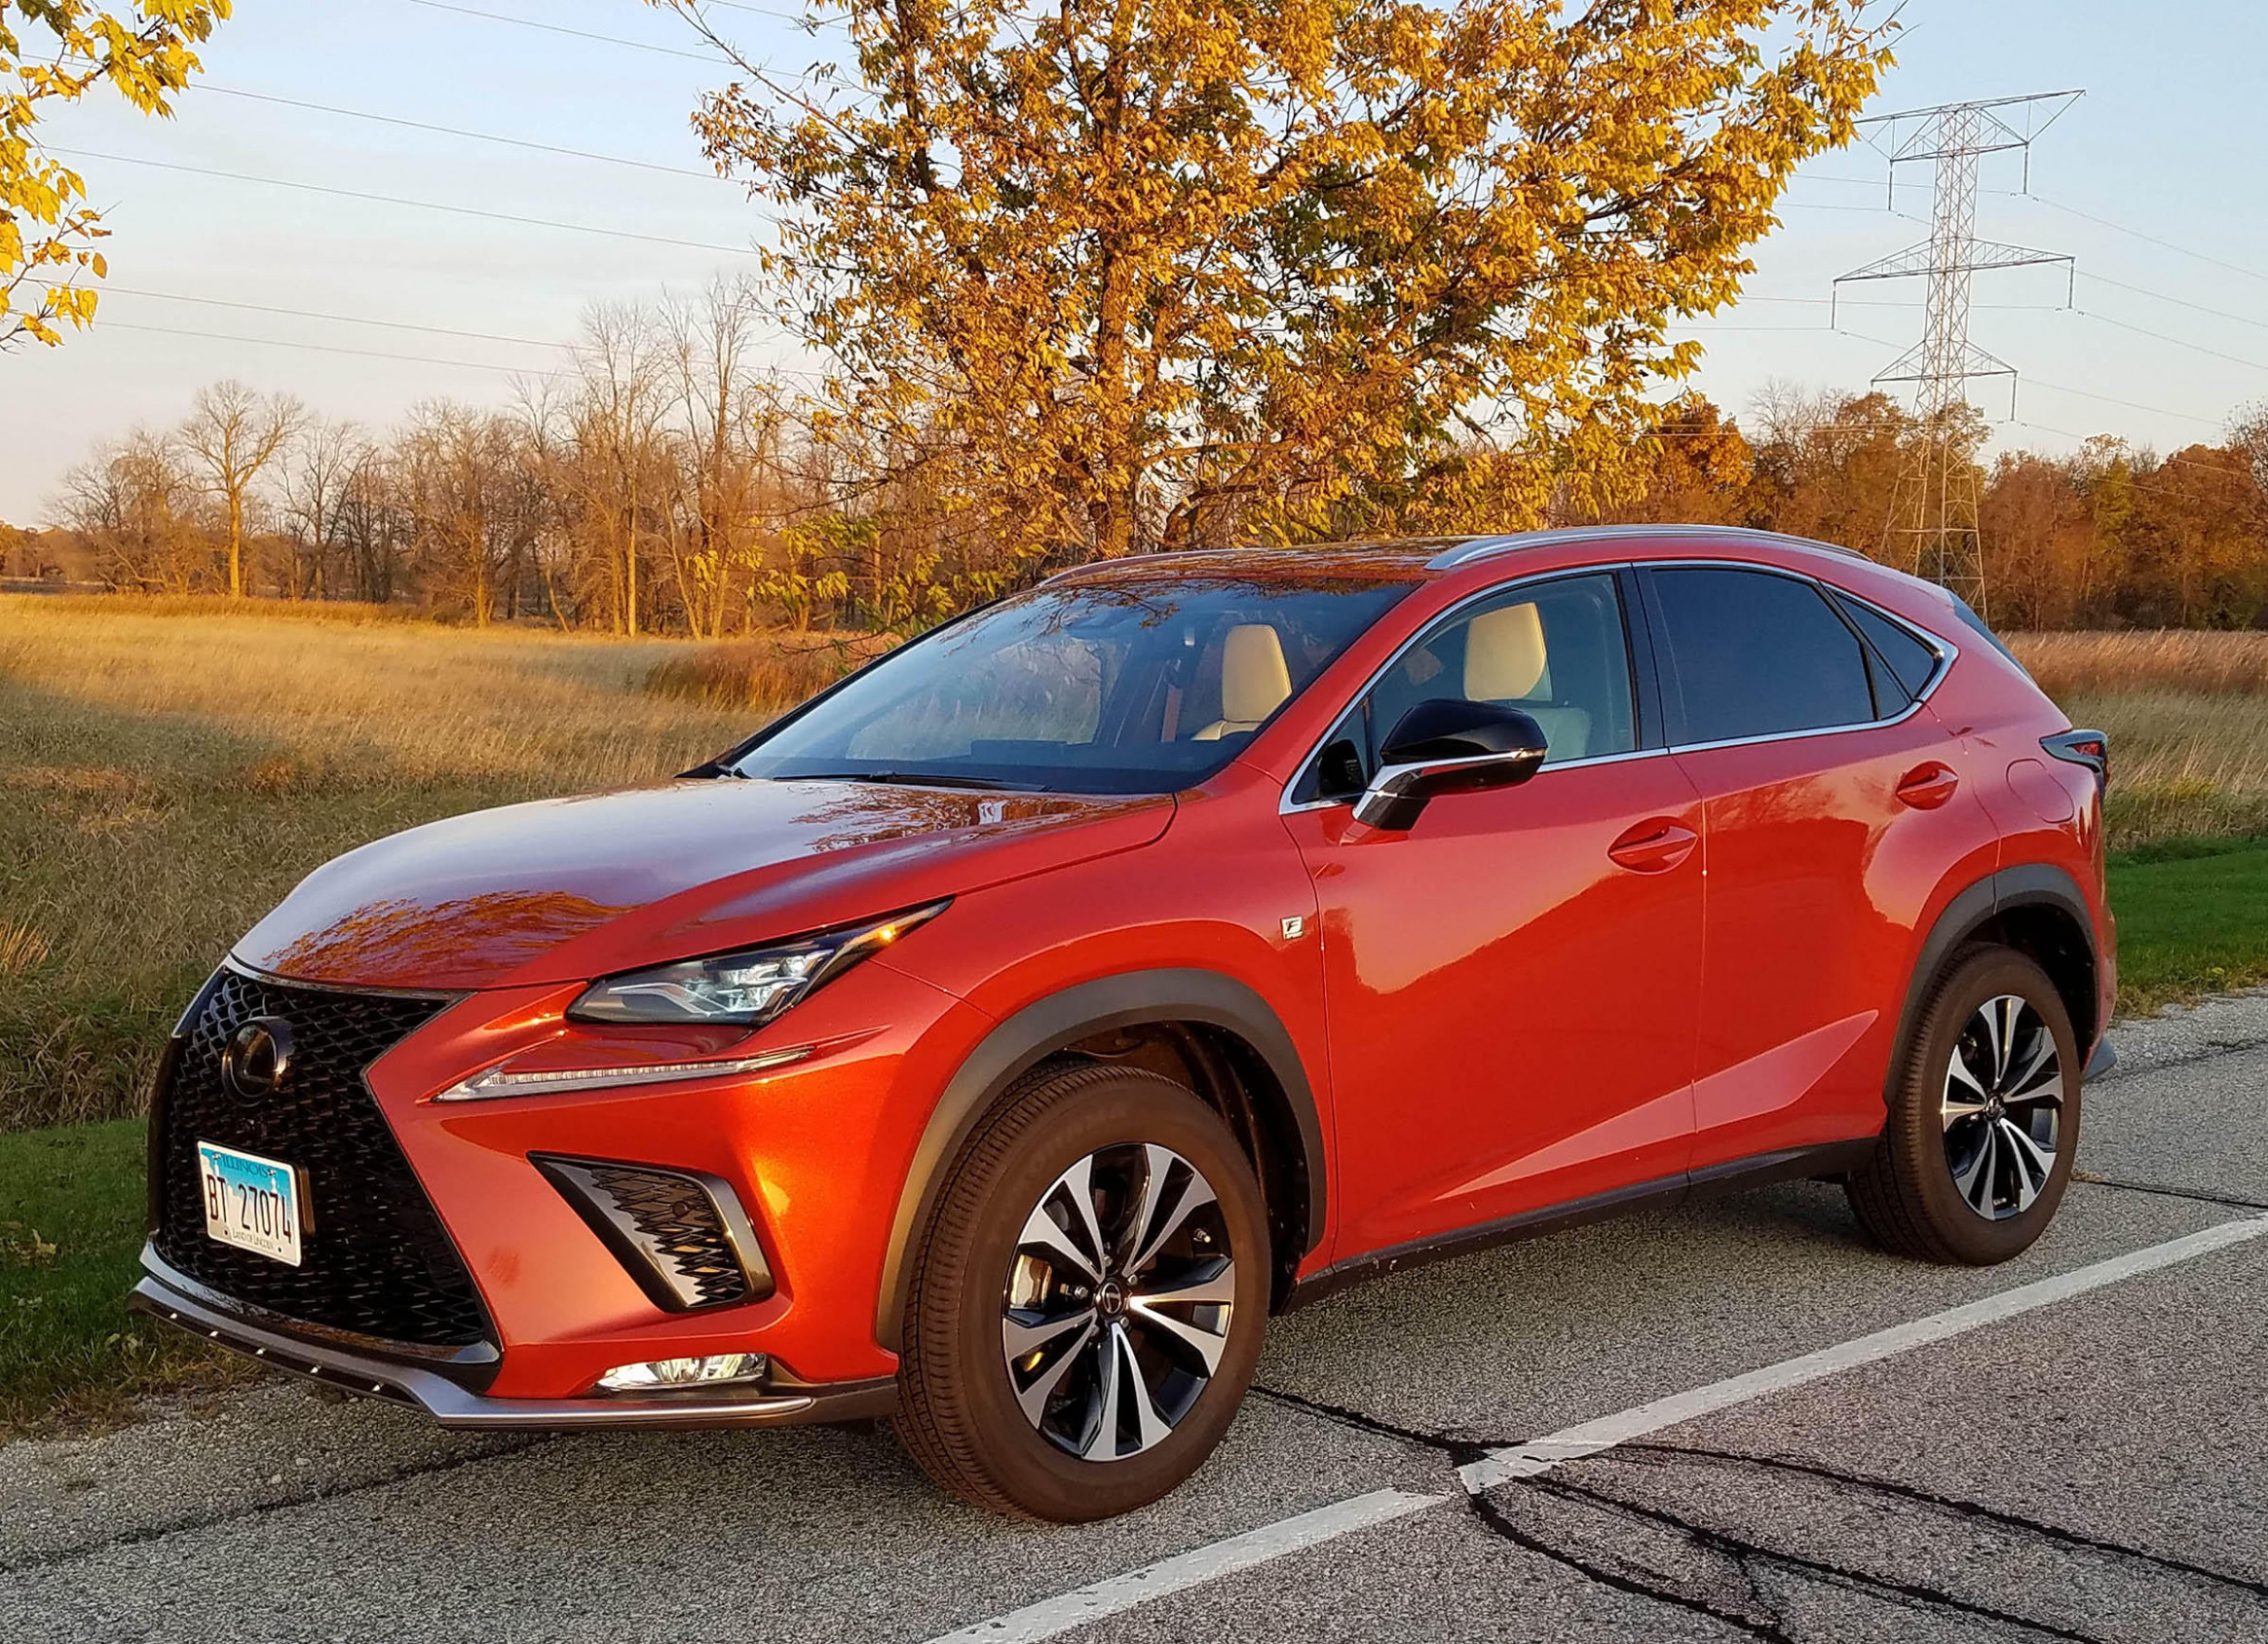 7 Lexus NX 7 AWD F Sport Review | WUWM - 2020 orange lexus